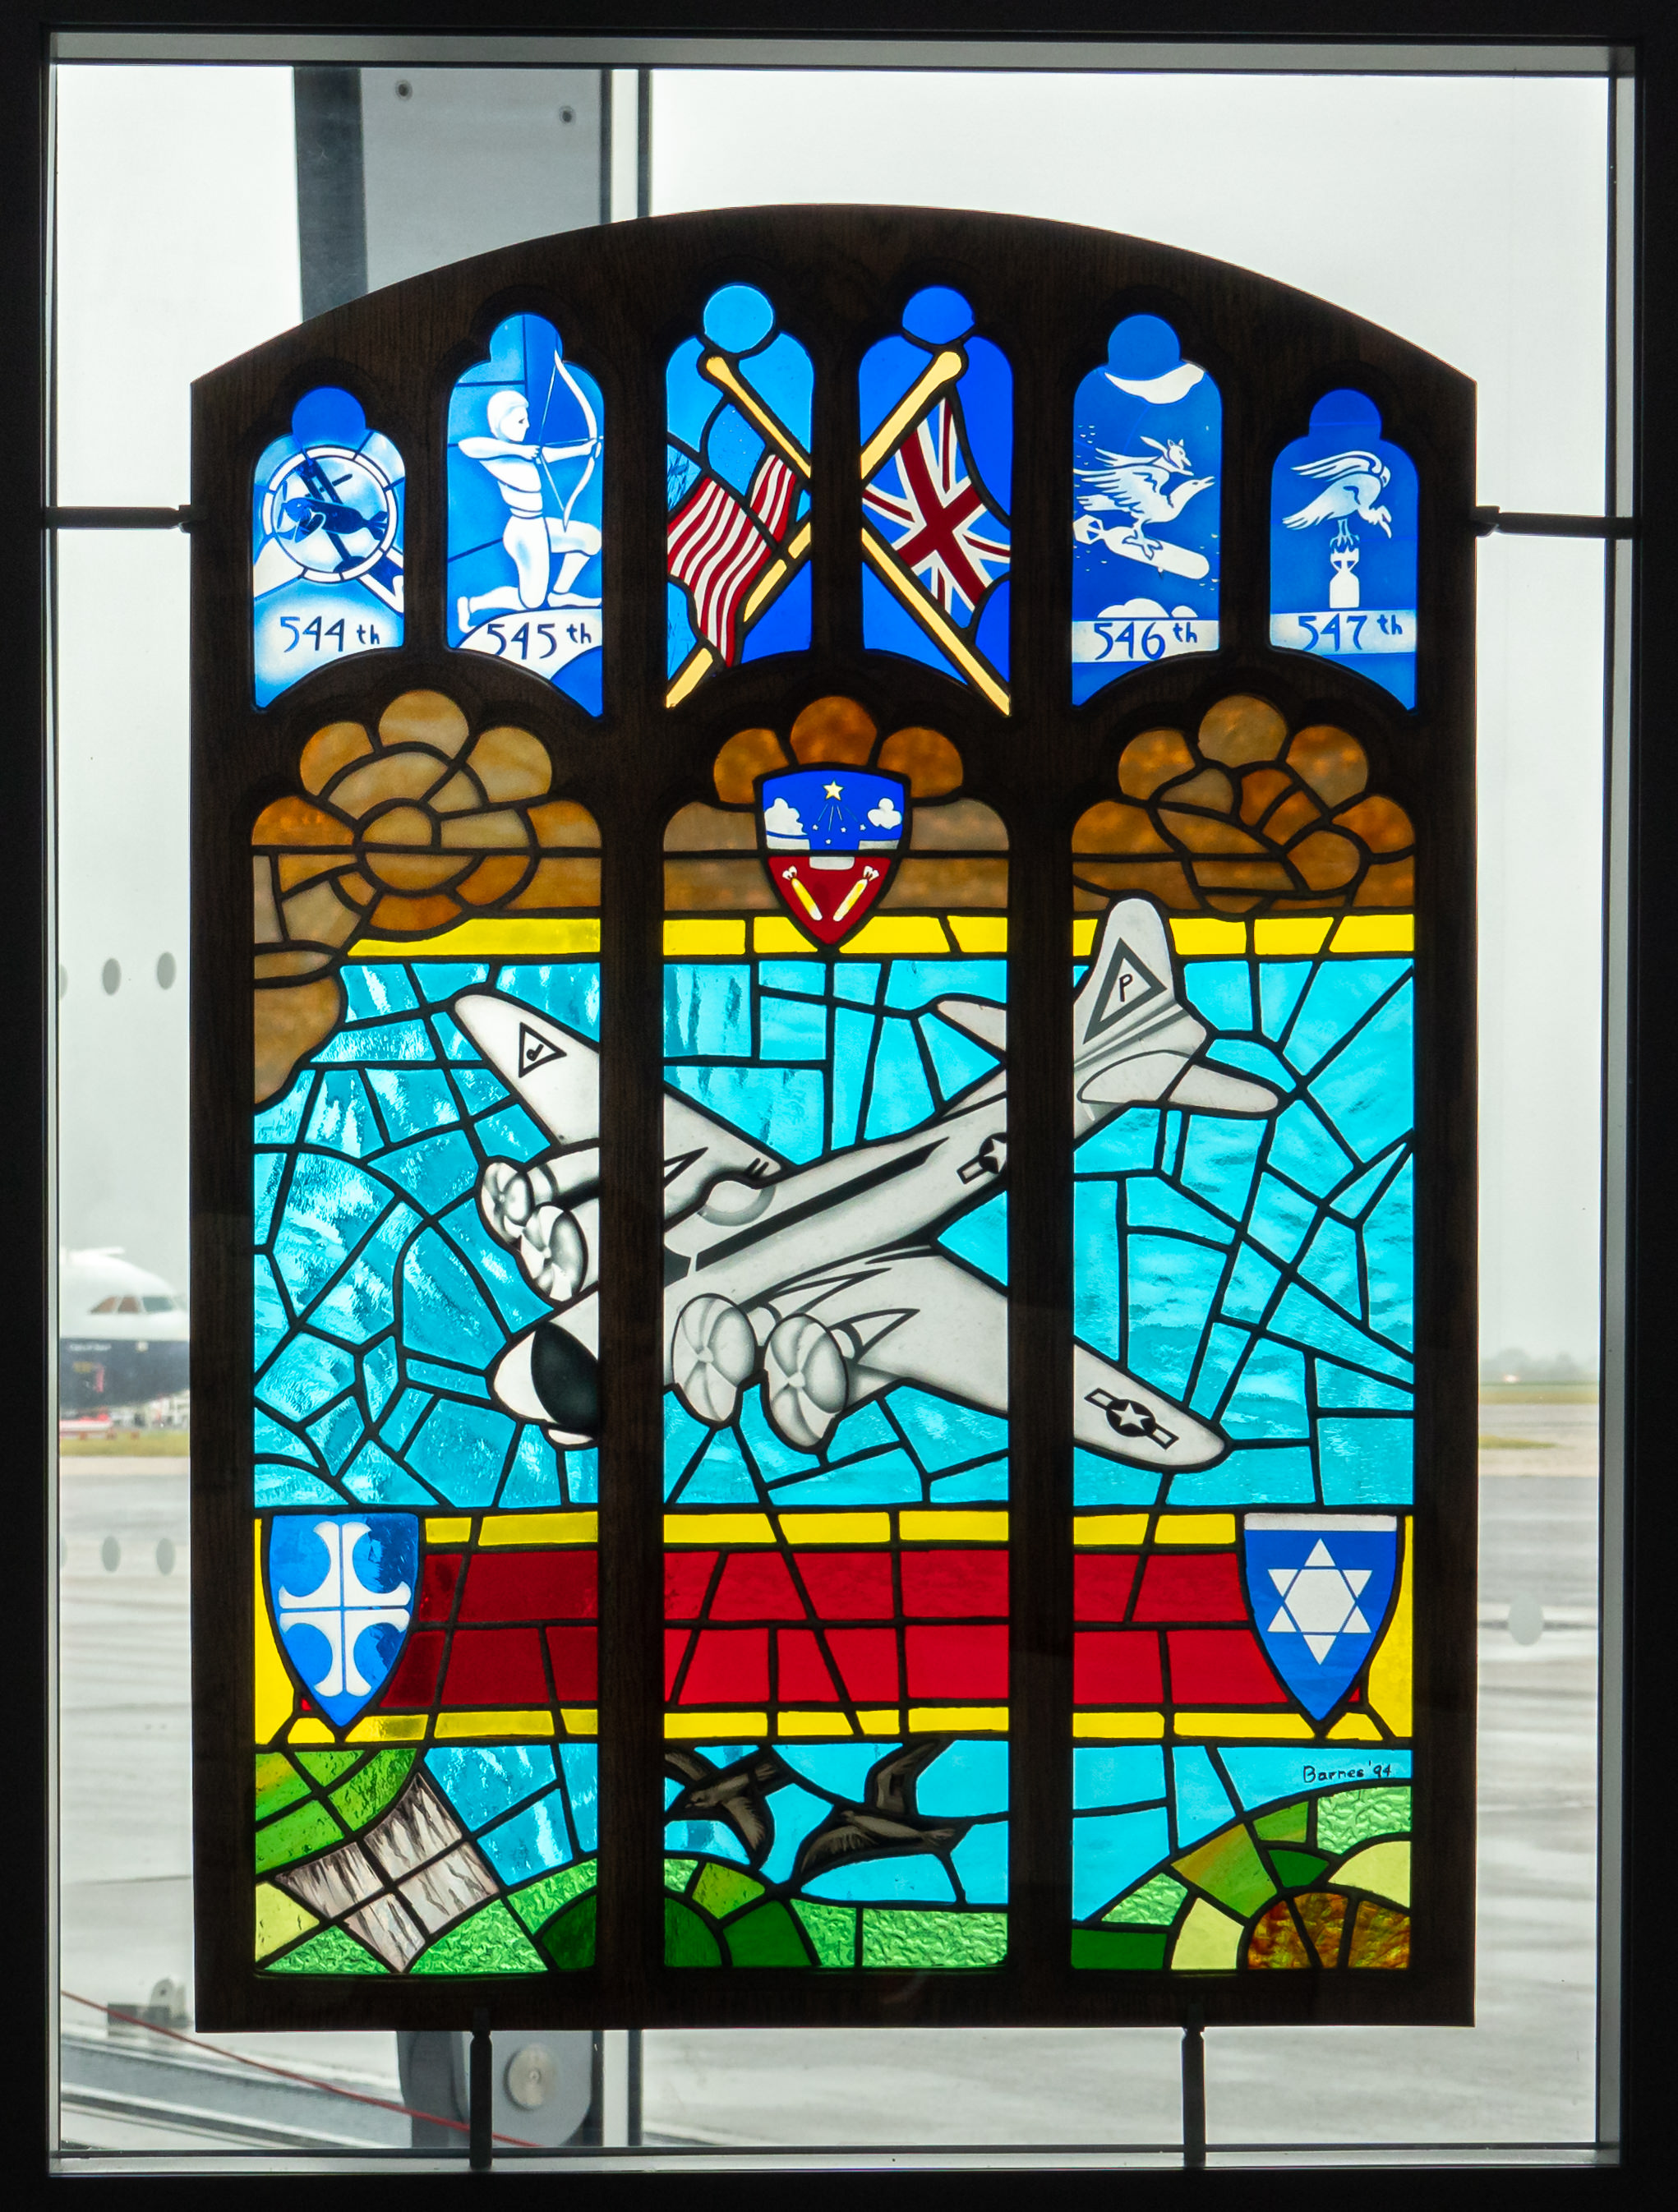 This stained glass panel was on loan to the museum from a local church. The people of England feel a deep sense of gratitude to the thousands of American Airmen who flew from English bases in WWII and never returned.